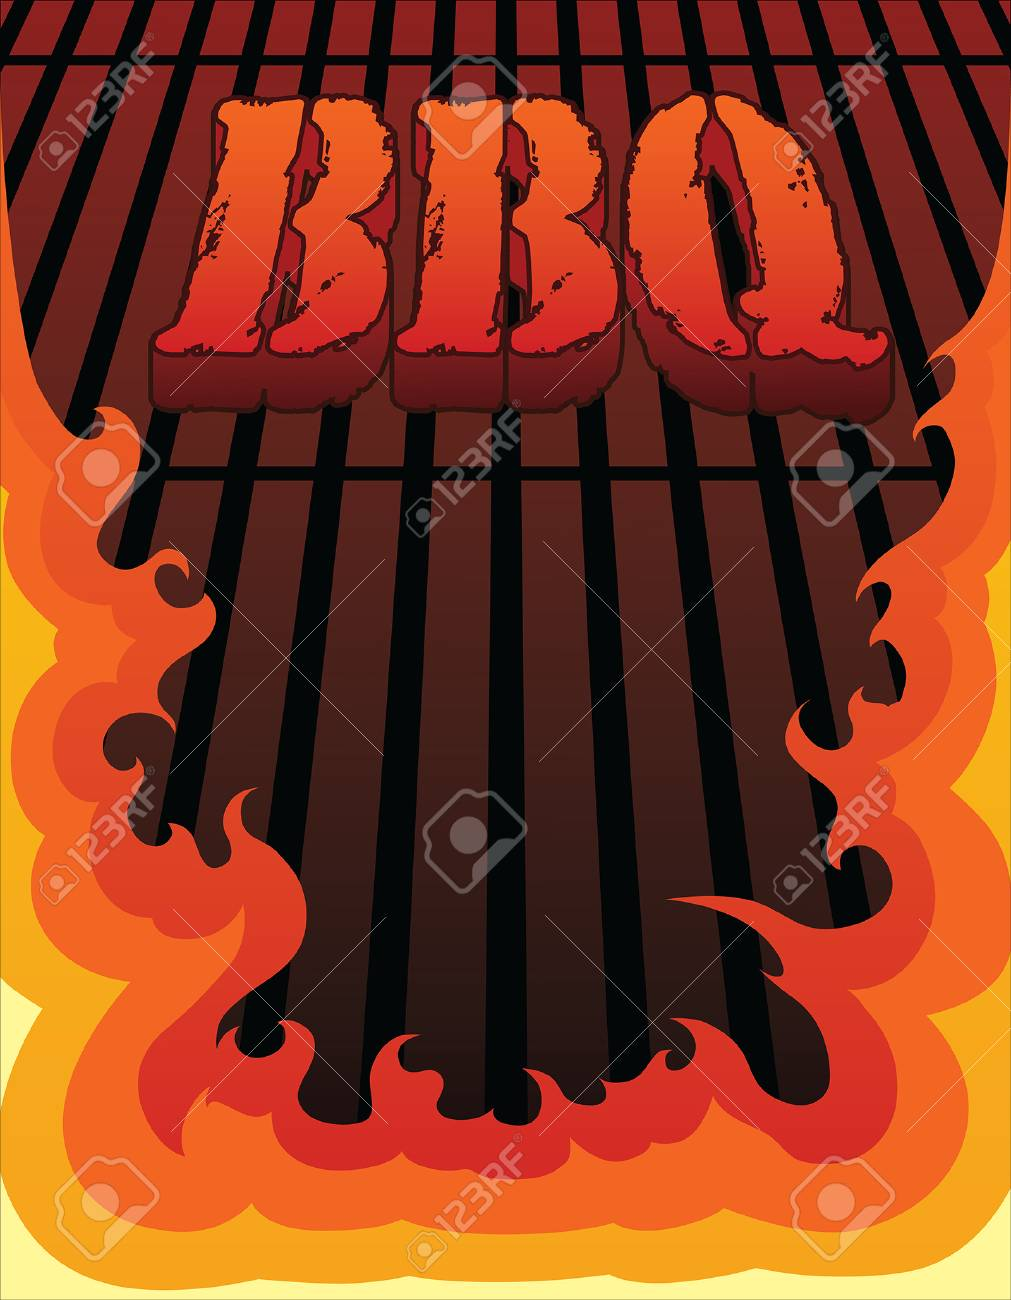 BBQ Design is an illustration of a barbeque or barbecue design..